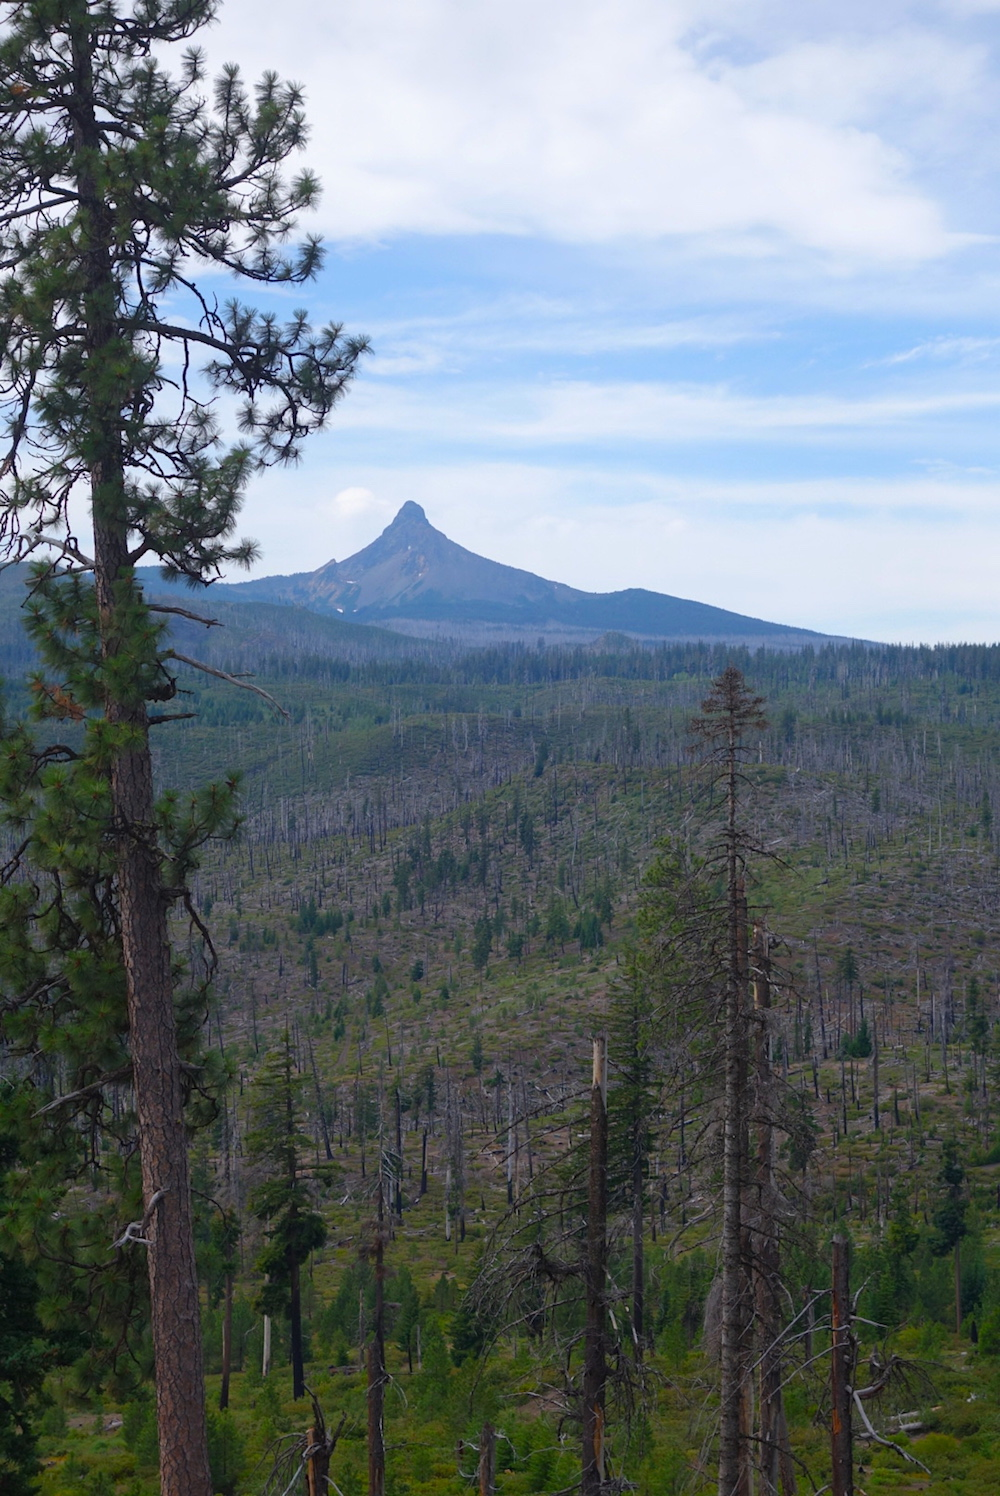 Mount Washington viewpoint scenic lookout - Central Oregon Road Trip Stops